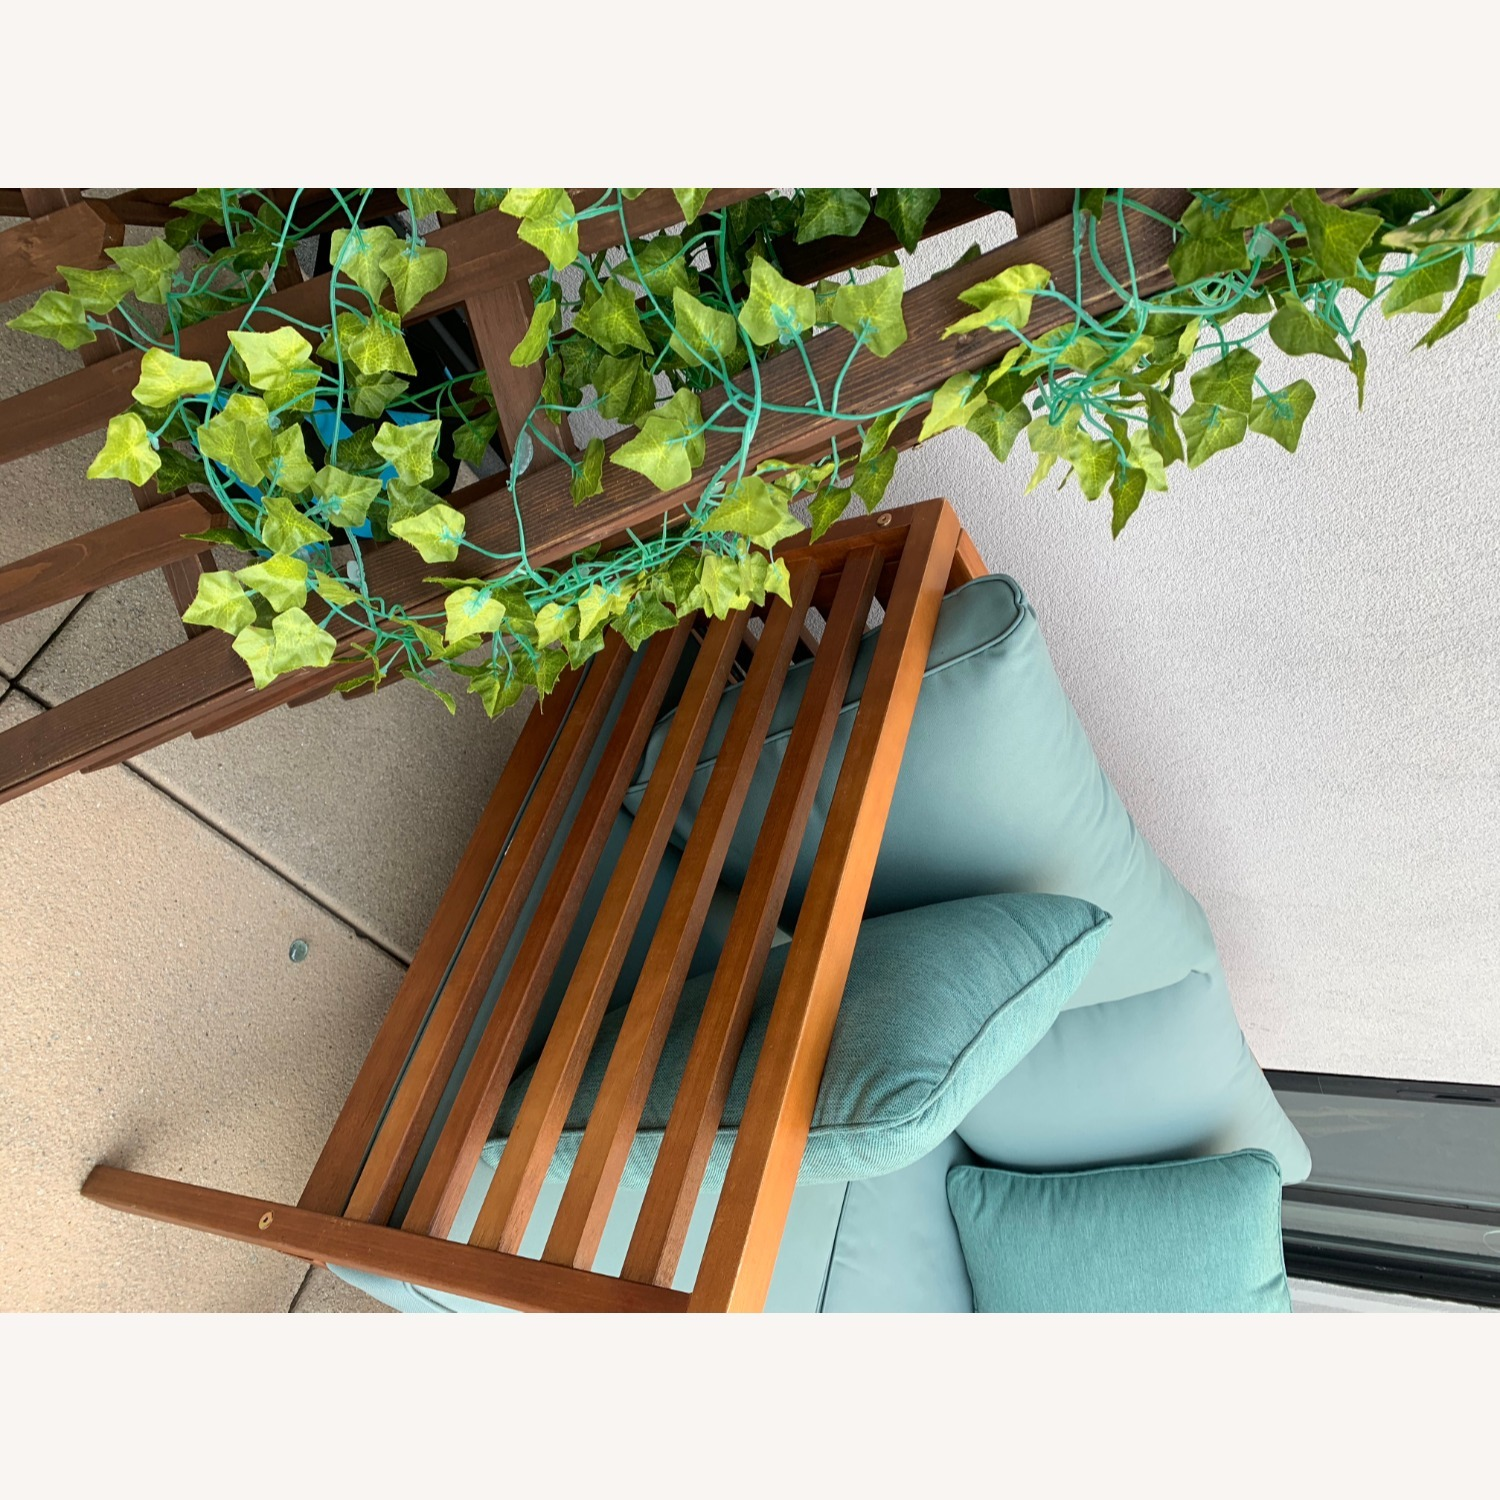 Patio Loveseat + Table + Obelisk With Faux Ivy - image-9